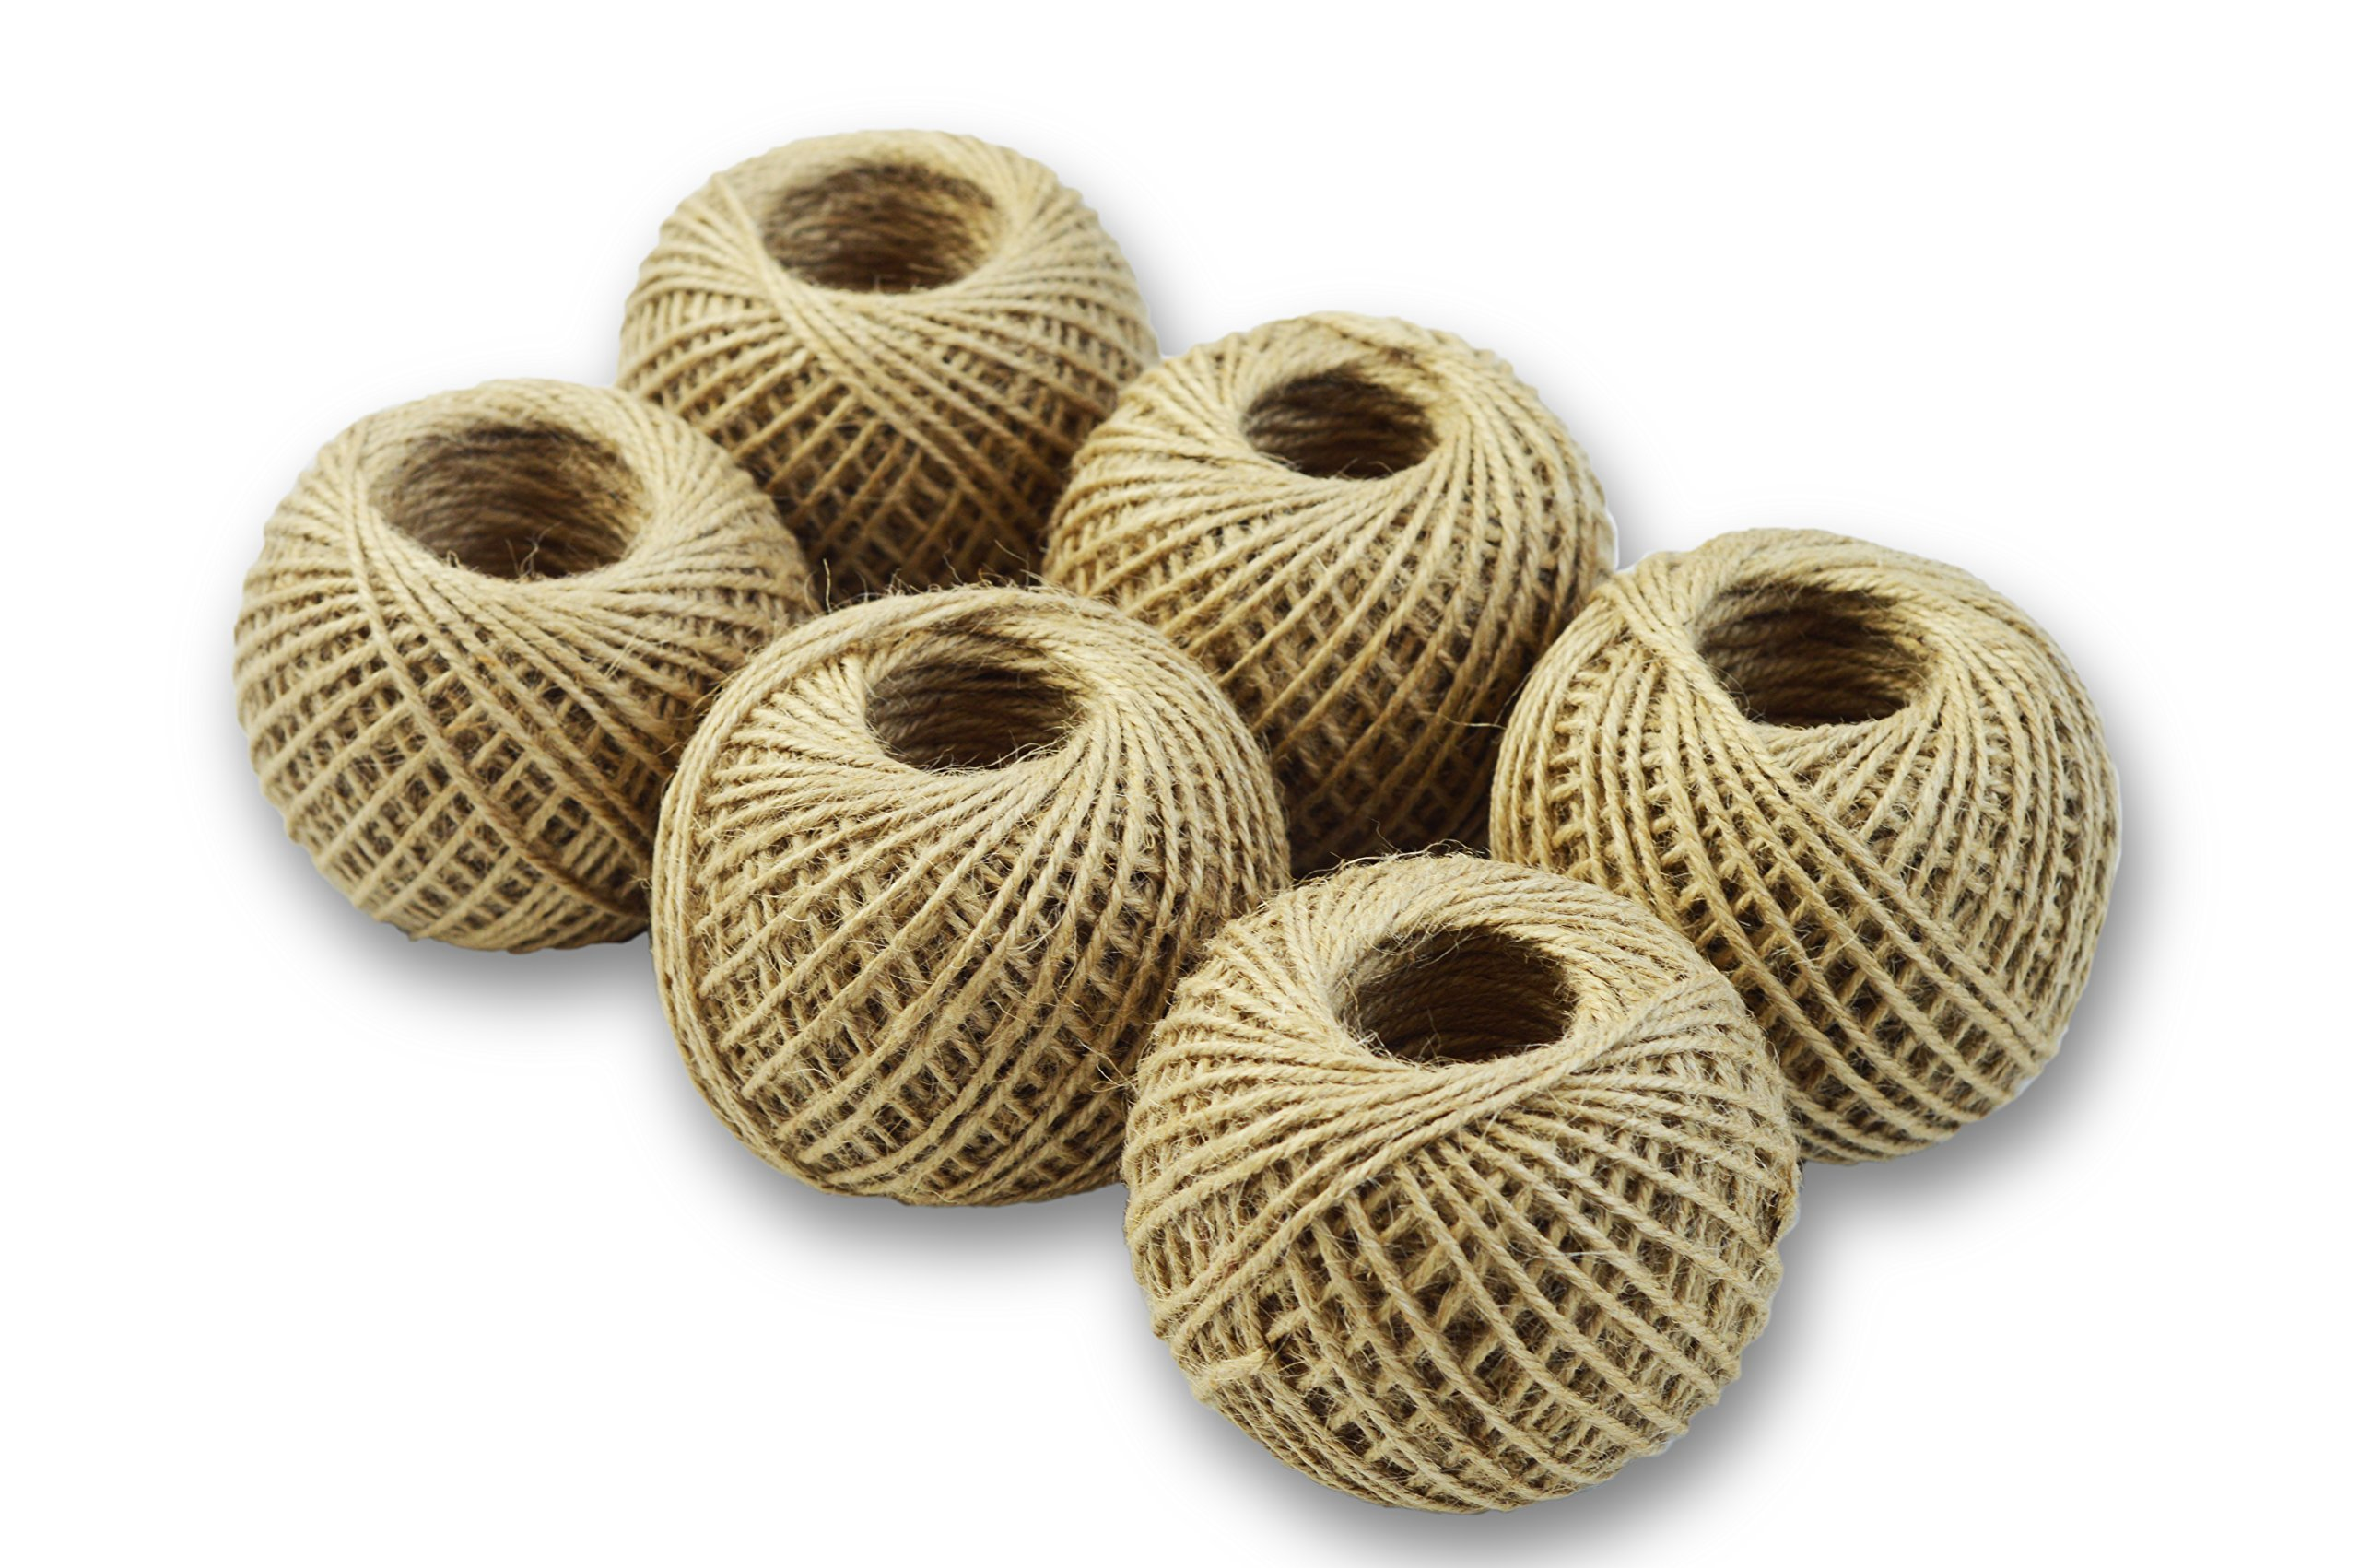 Jute Twine for Crafts, Butcher String, or Garden- 6 Roll Value Pack 220 Ft Per Roll